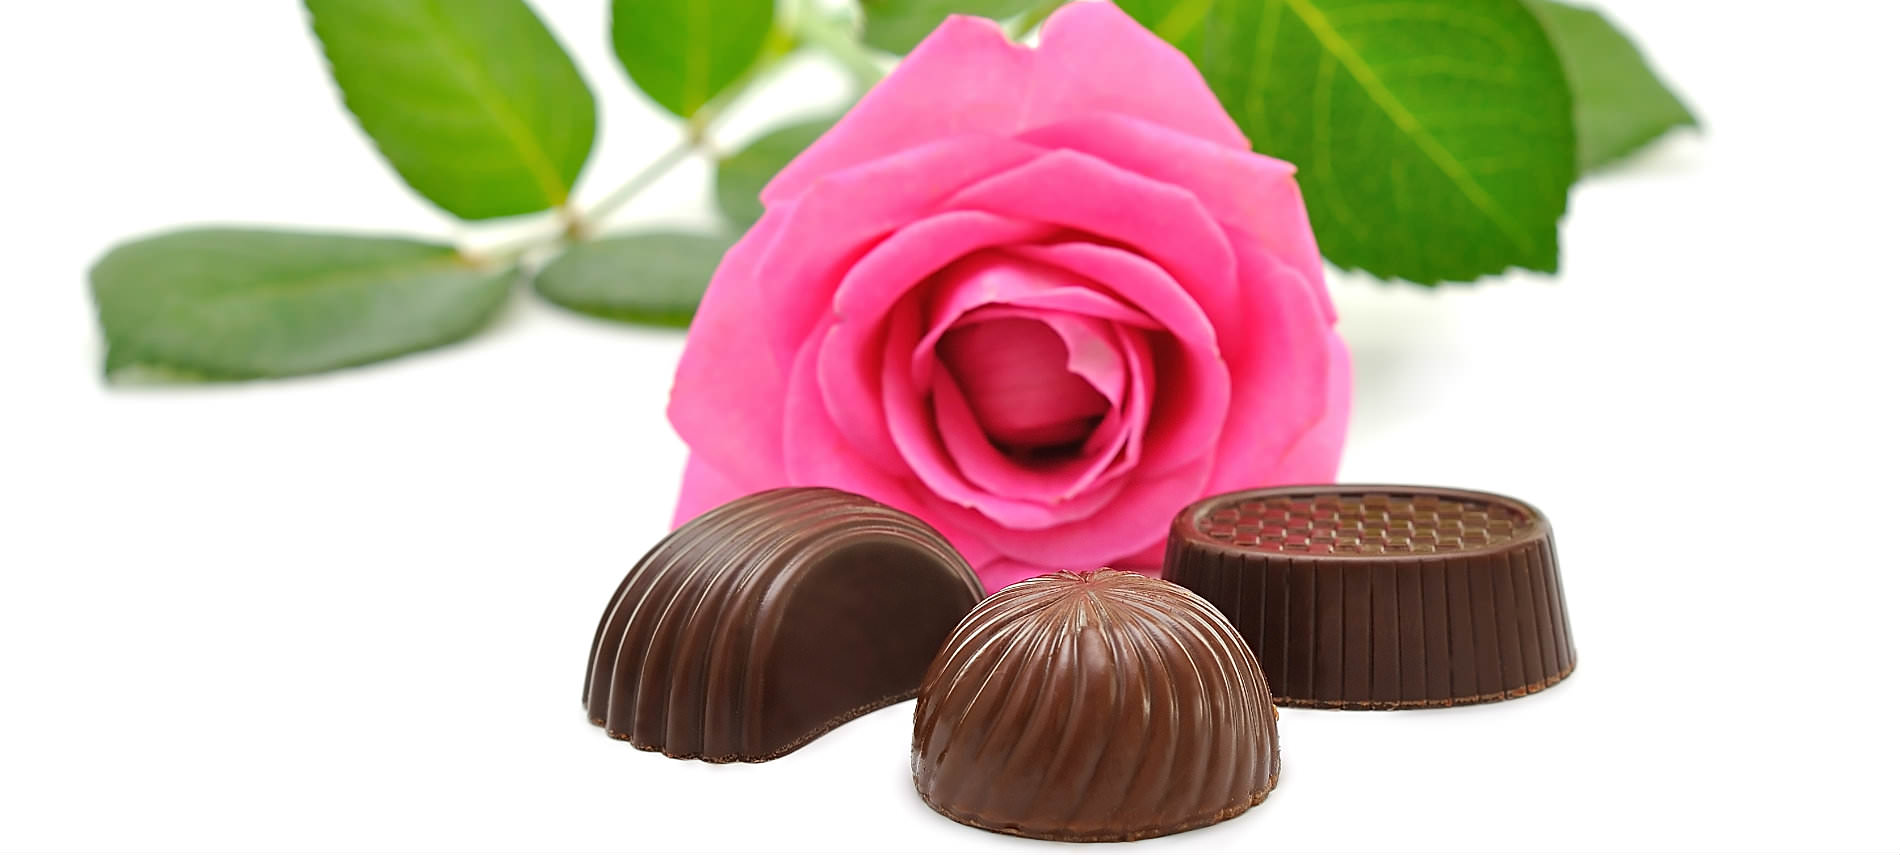 Three pieces of chocolate candy with pink rose and green leaves laying.